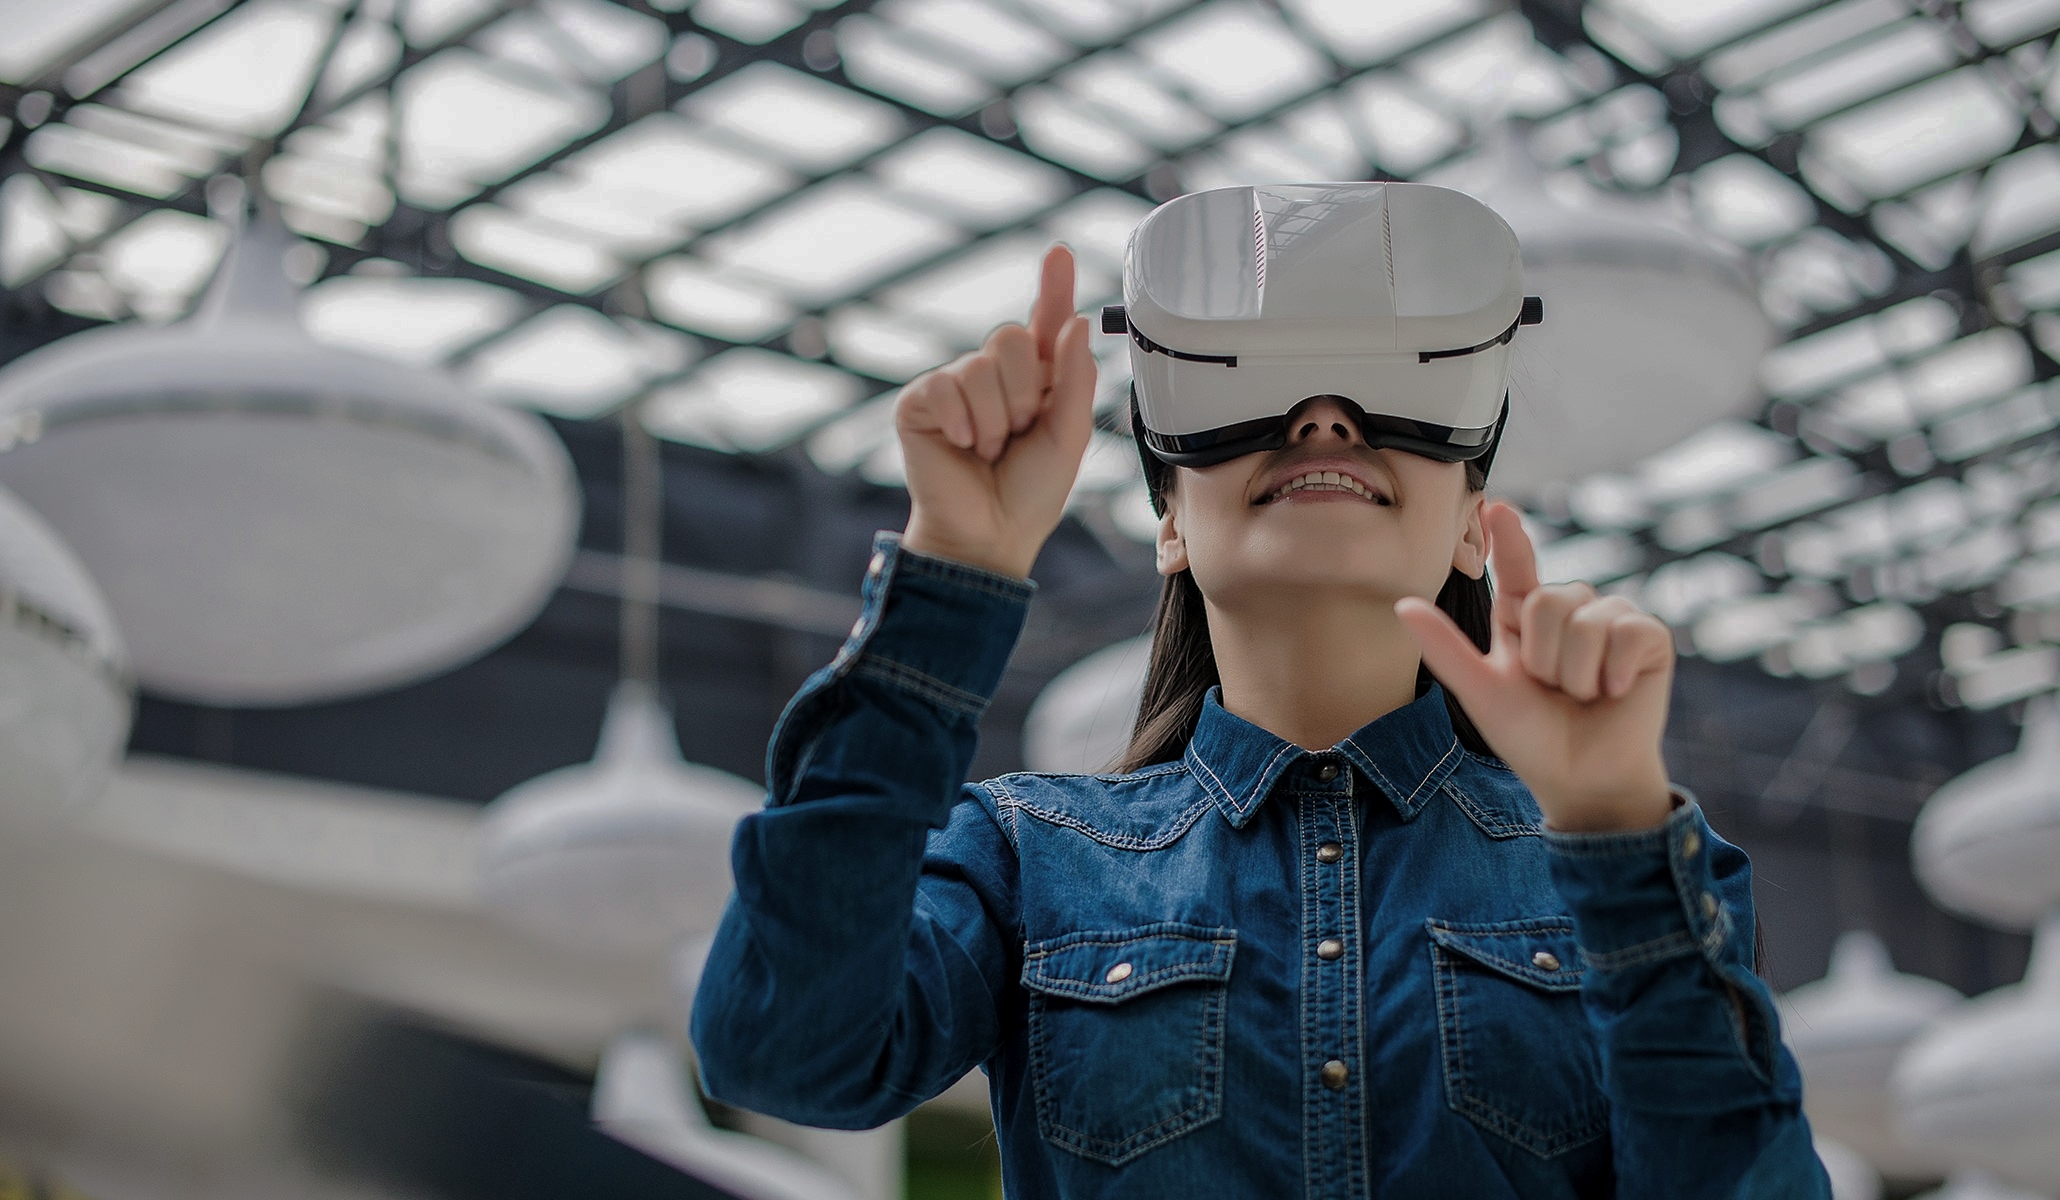 7 KEY NEW STORYTELLING PRINCIPLES YOU NEED TO KNOW IN THE AGE OF VR AND 360 VIDEO